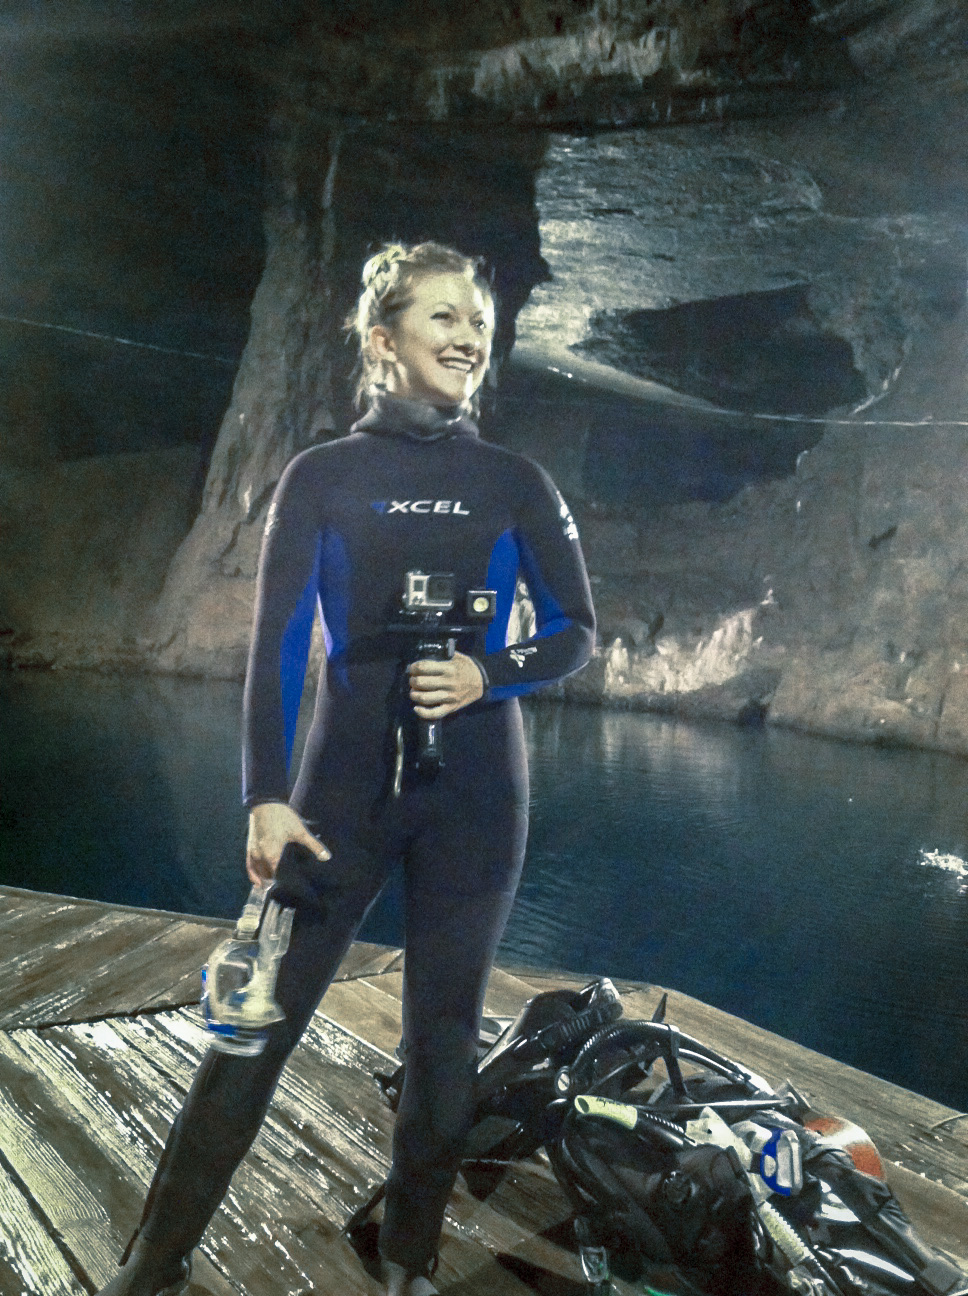 Scuba diving the bonne terre lead mines